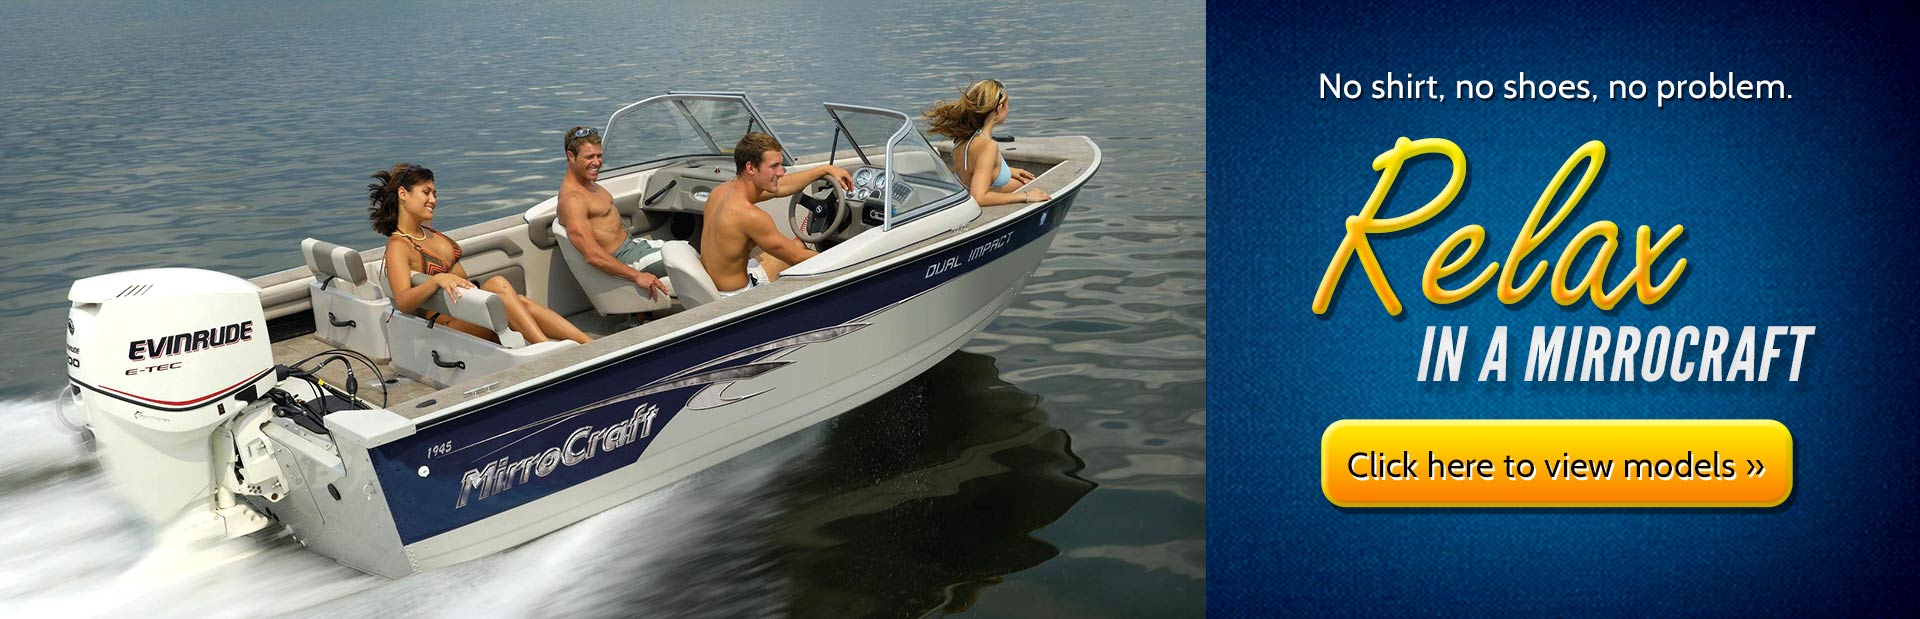 Click here to view MirroCraft boats.